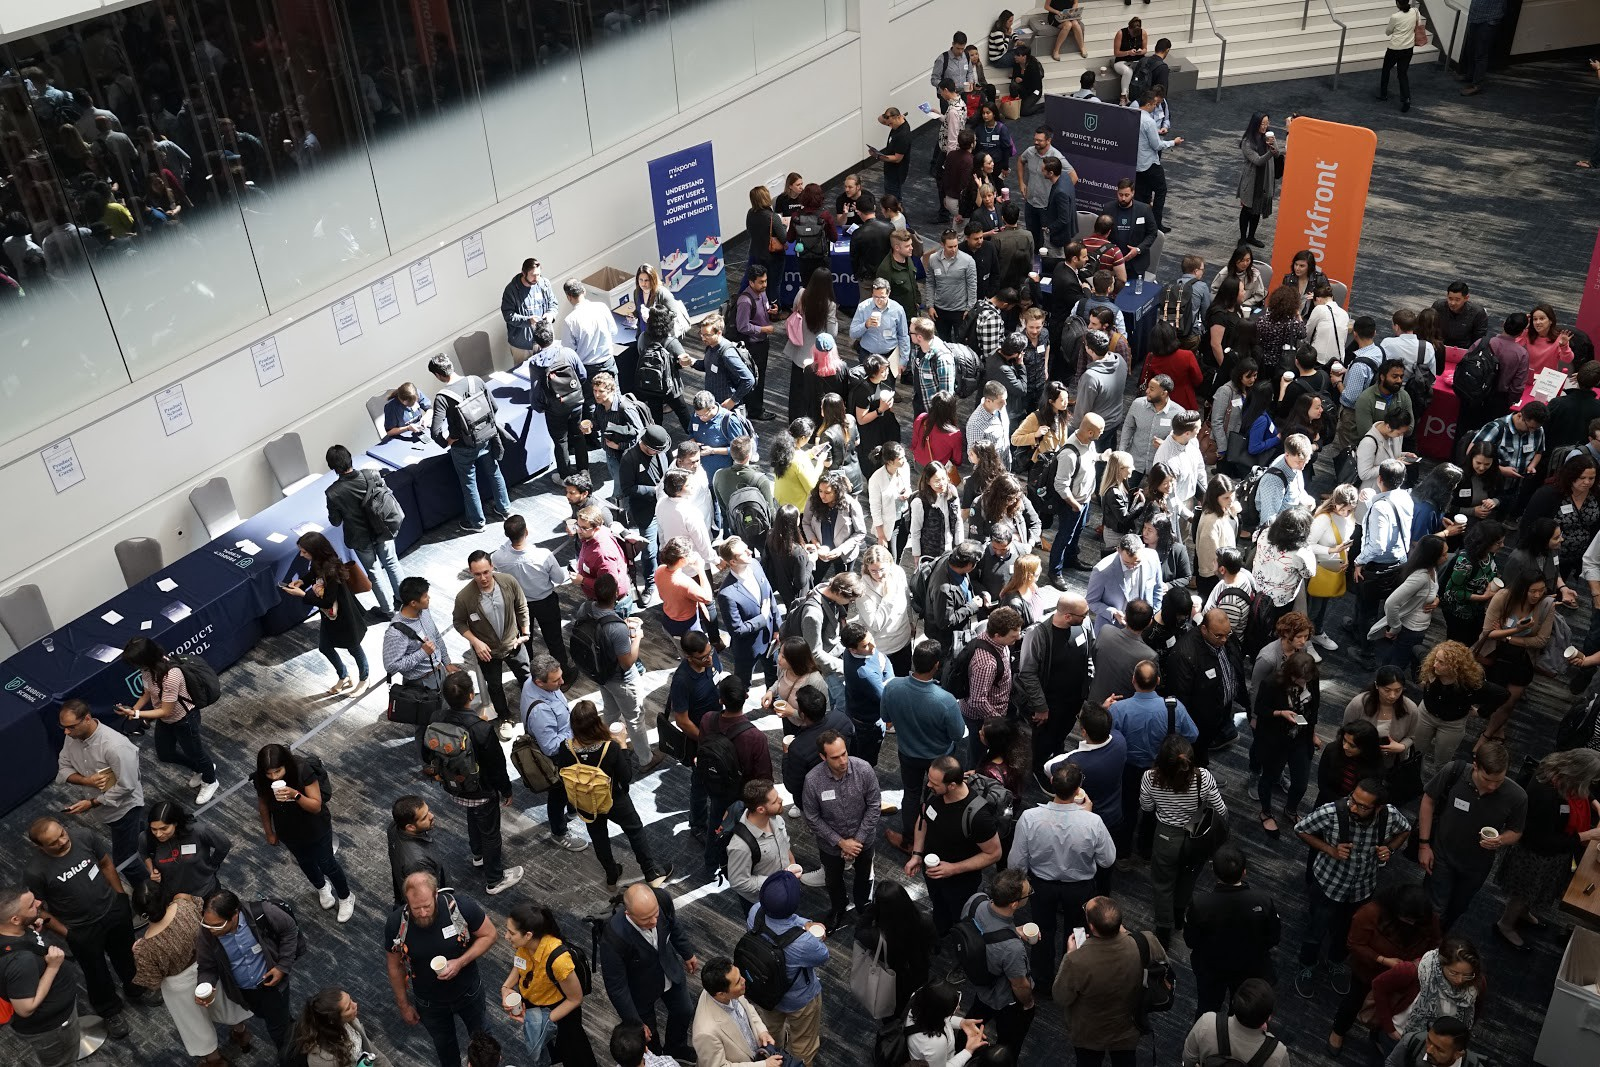 CWCBE hits! The hottest trends in the cannabis industry were presented at this years cannabis world congress business expo